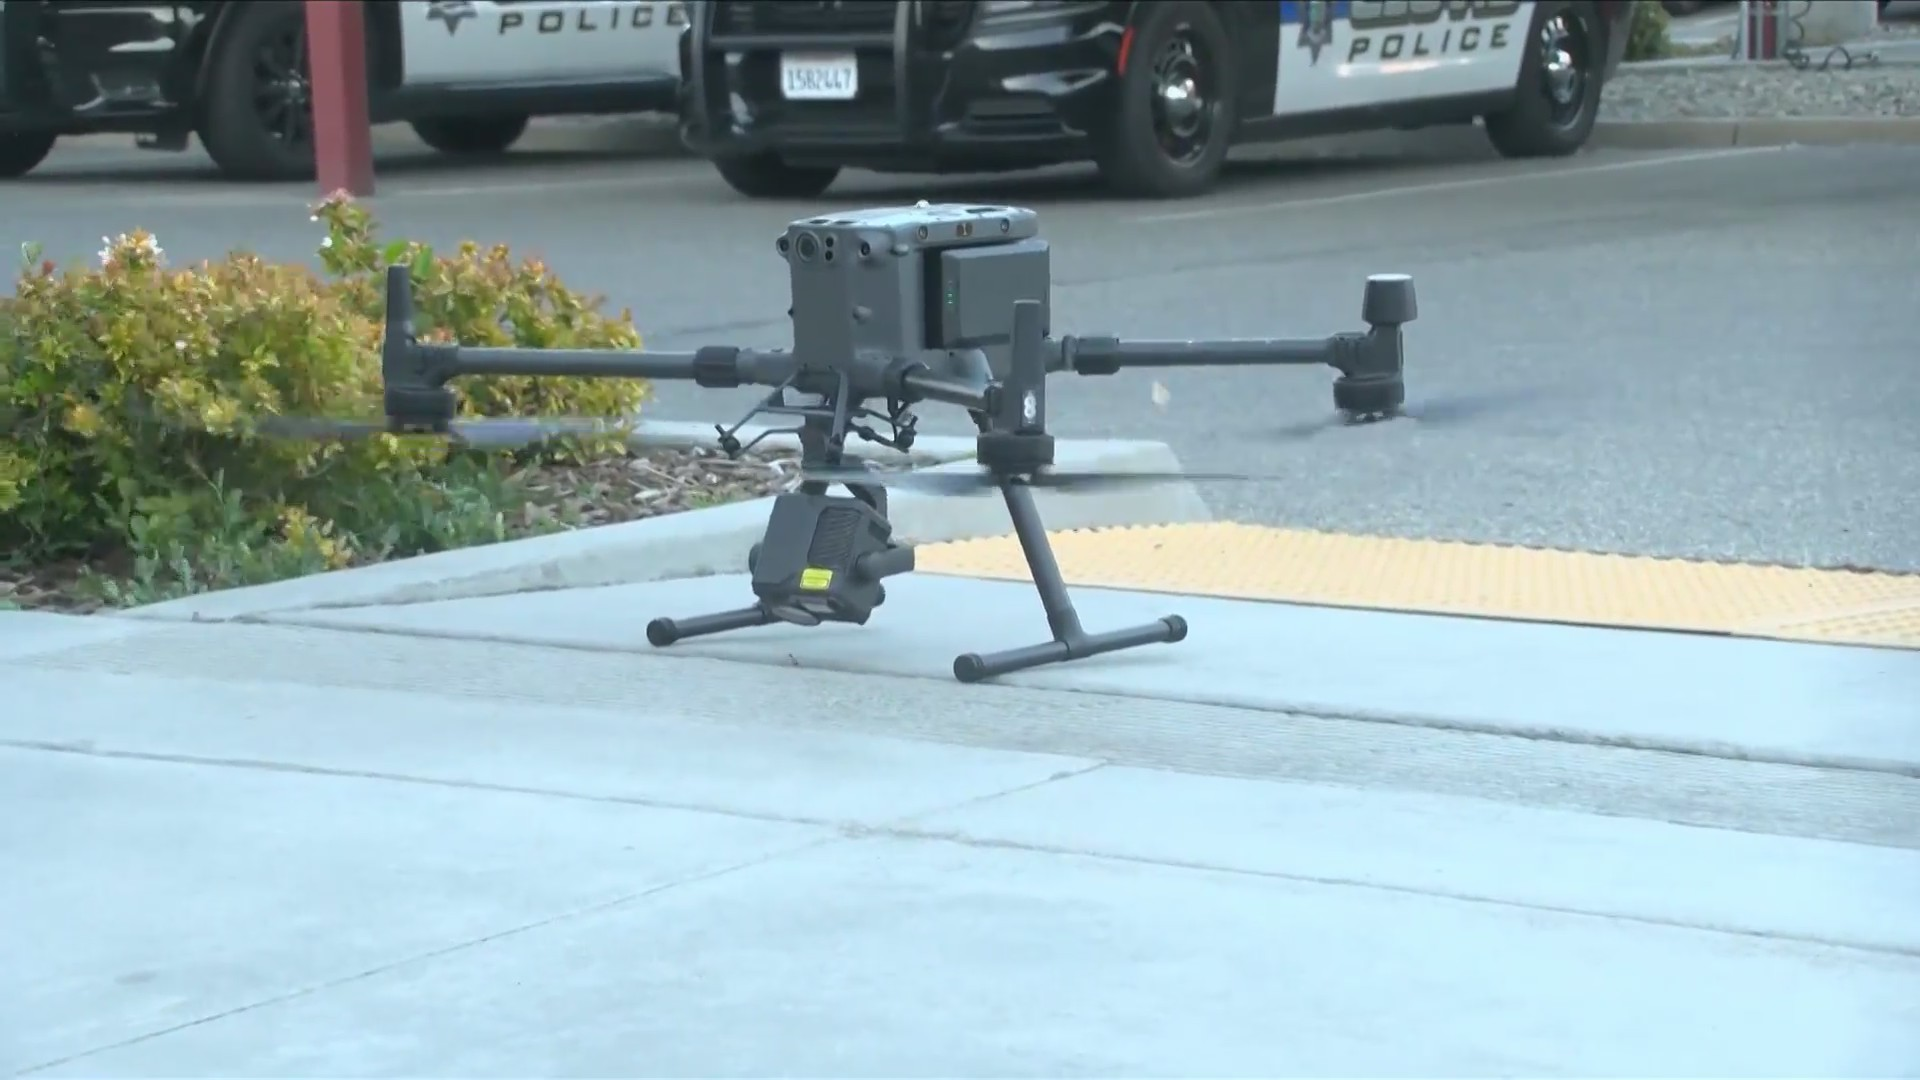 Clovis Police drone program on the forefront of technology in law enforcement